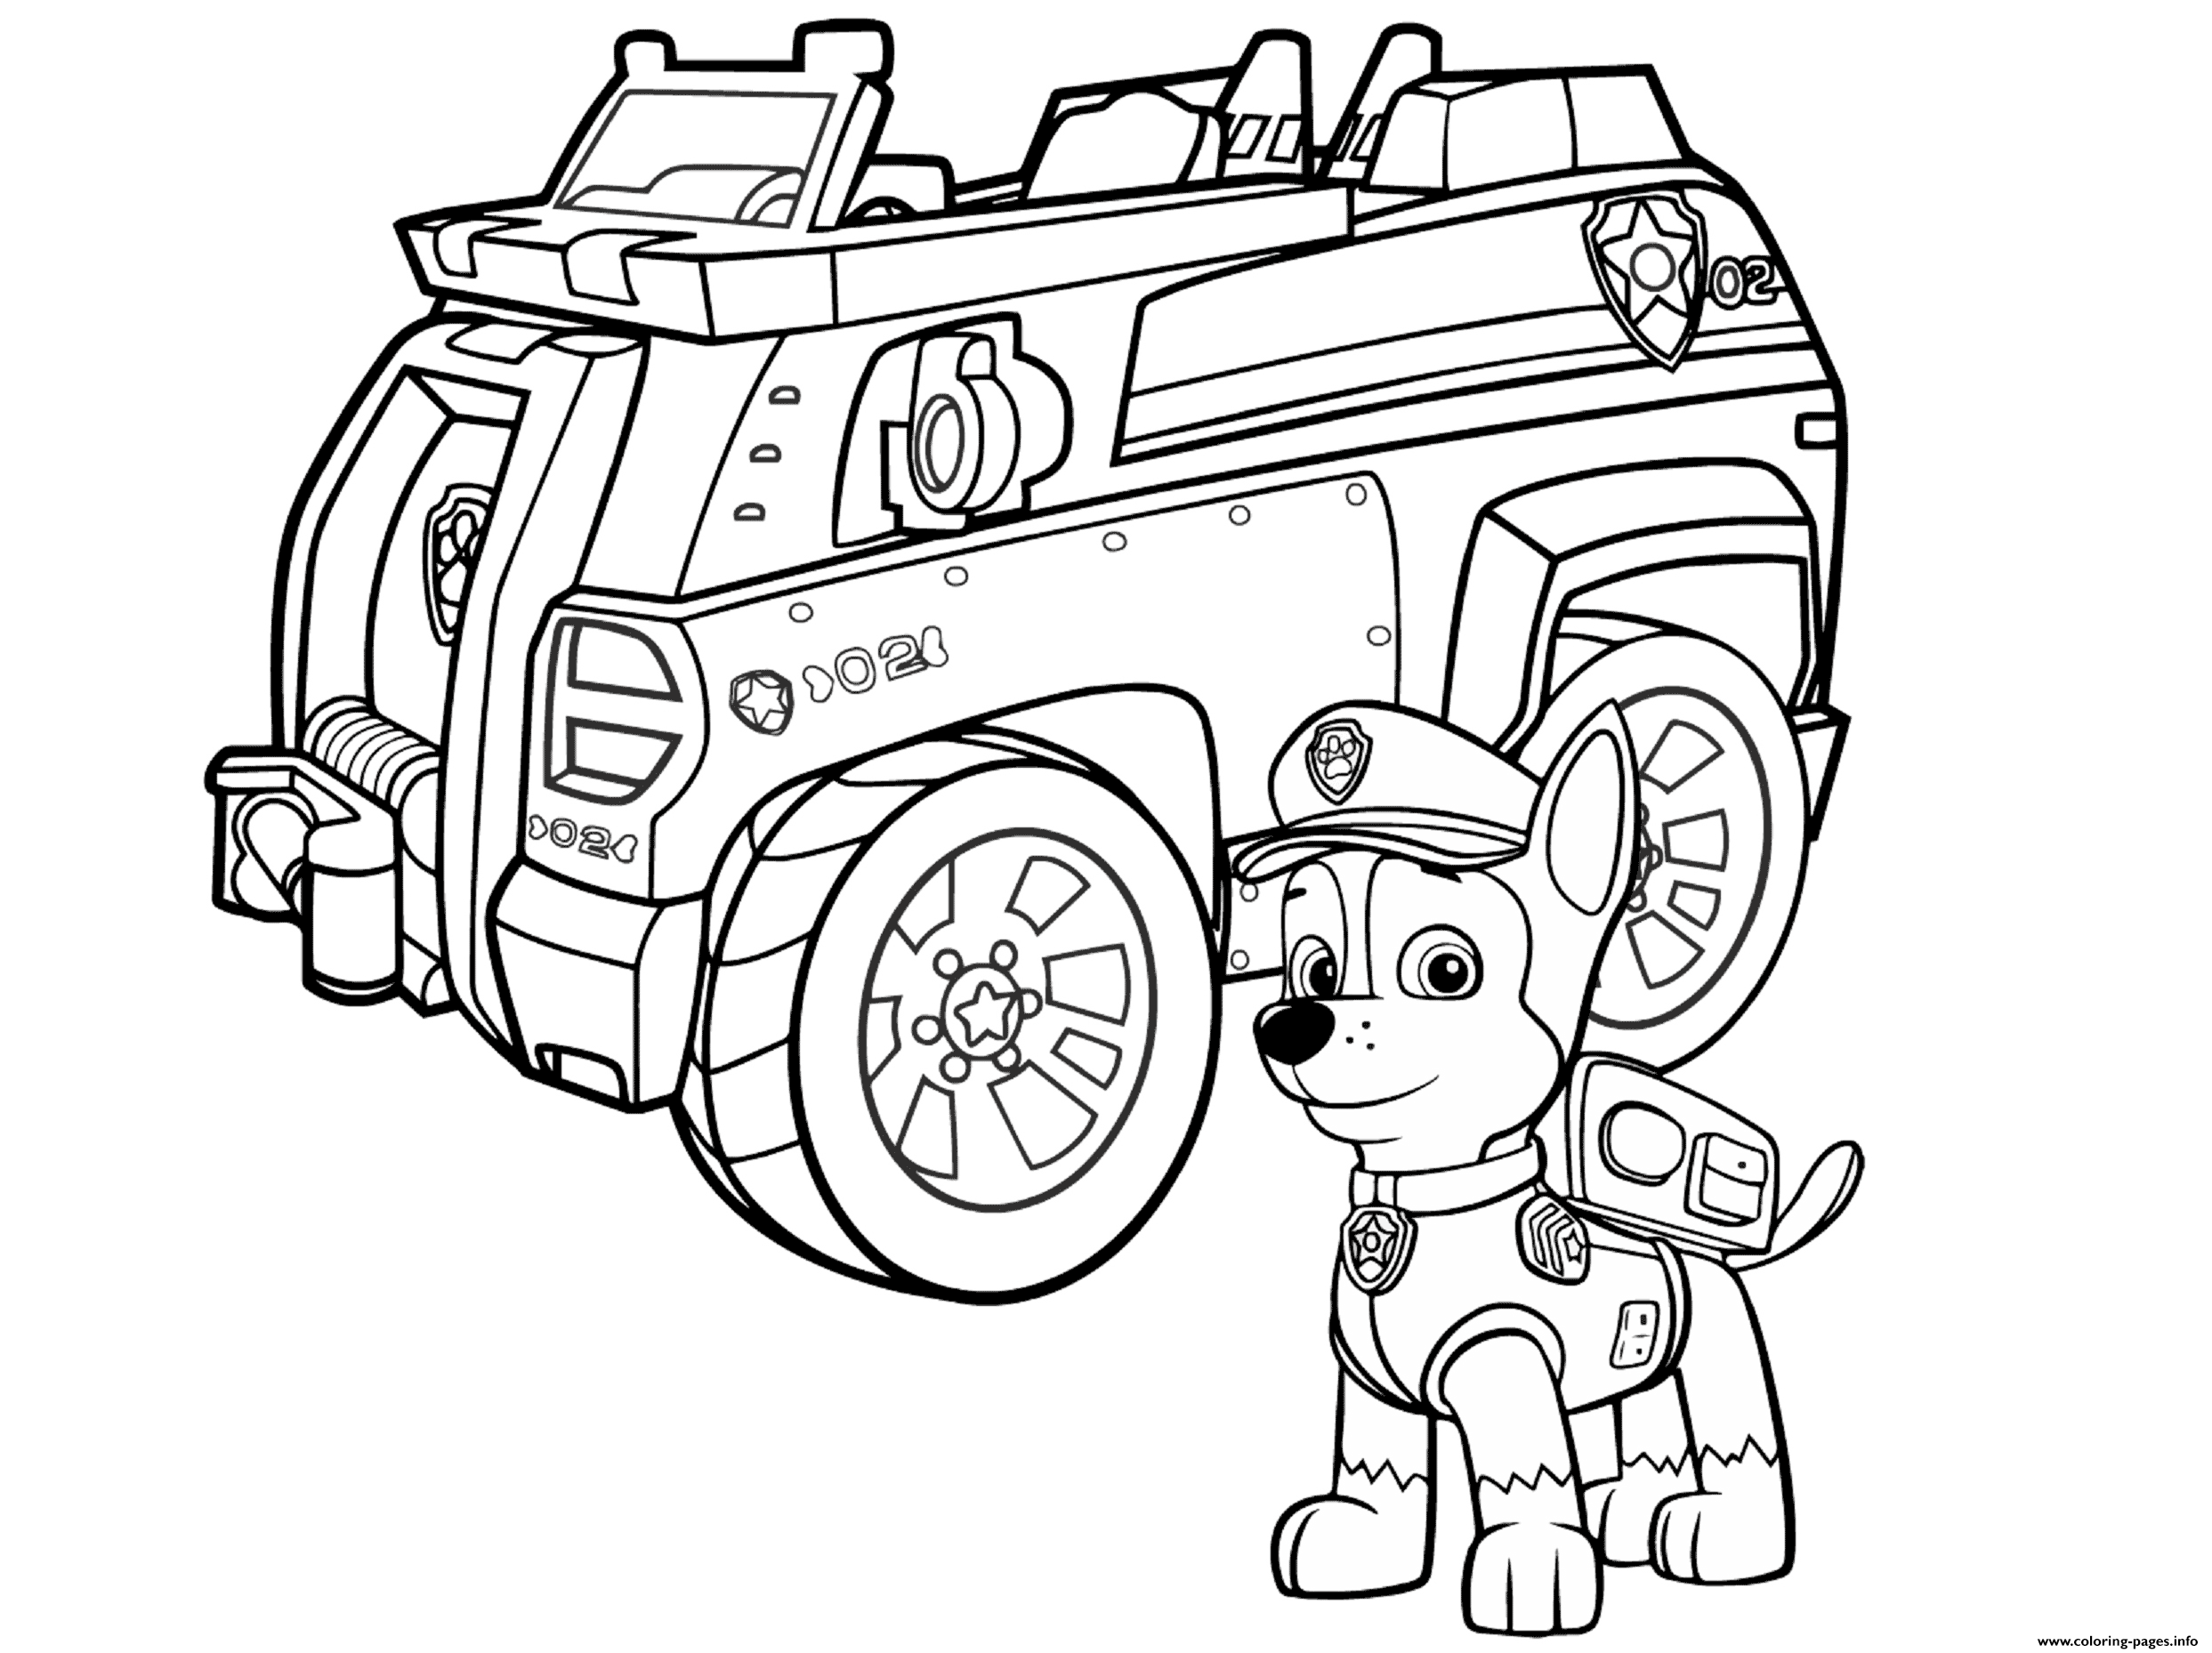 Paw Patrol Chase Police Car Coloring Pages Printable